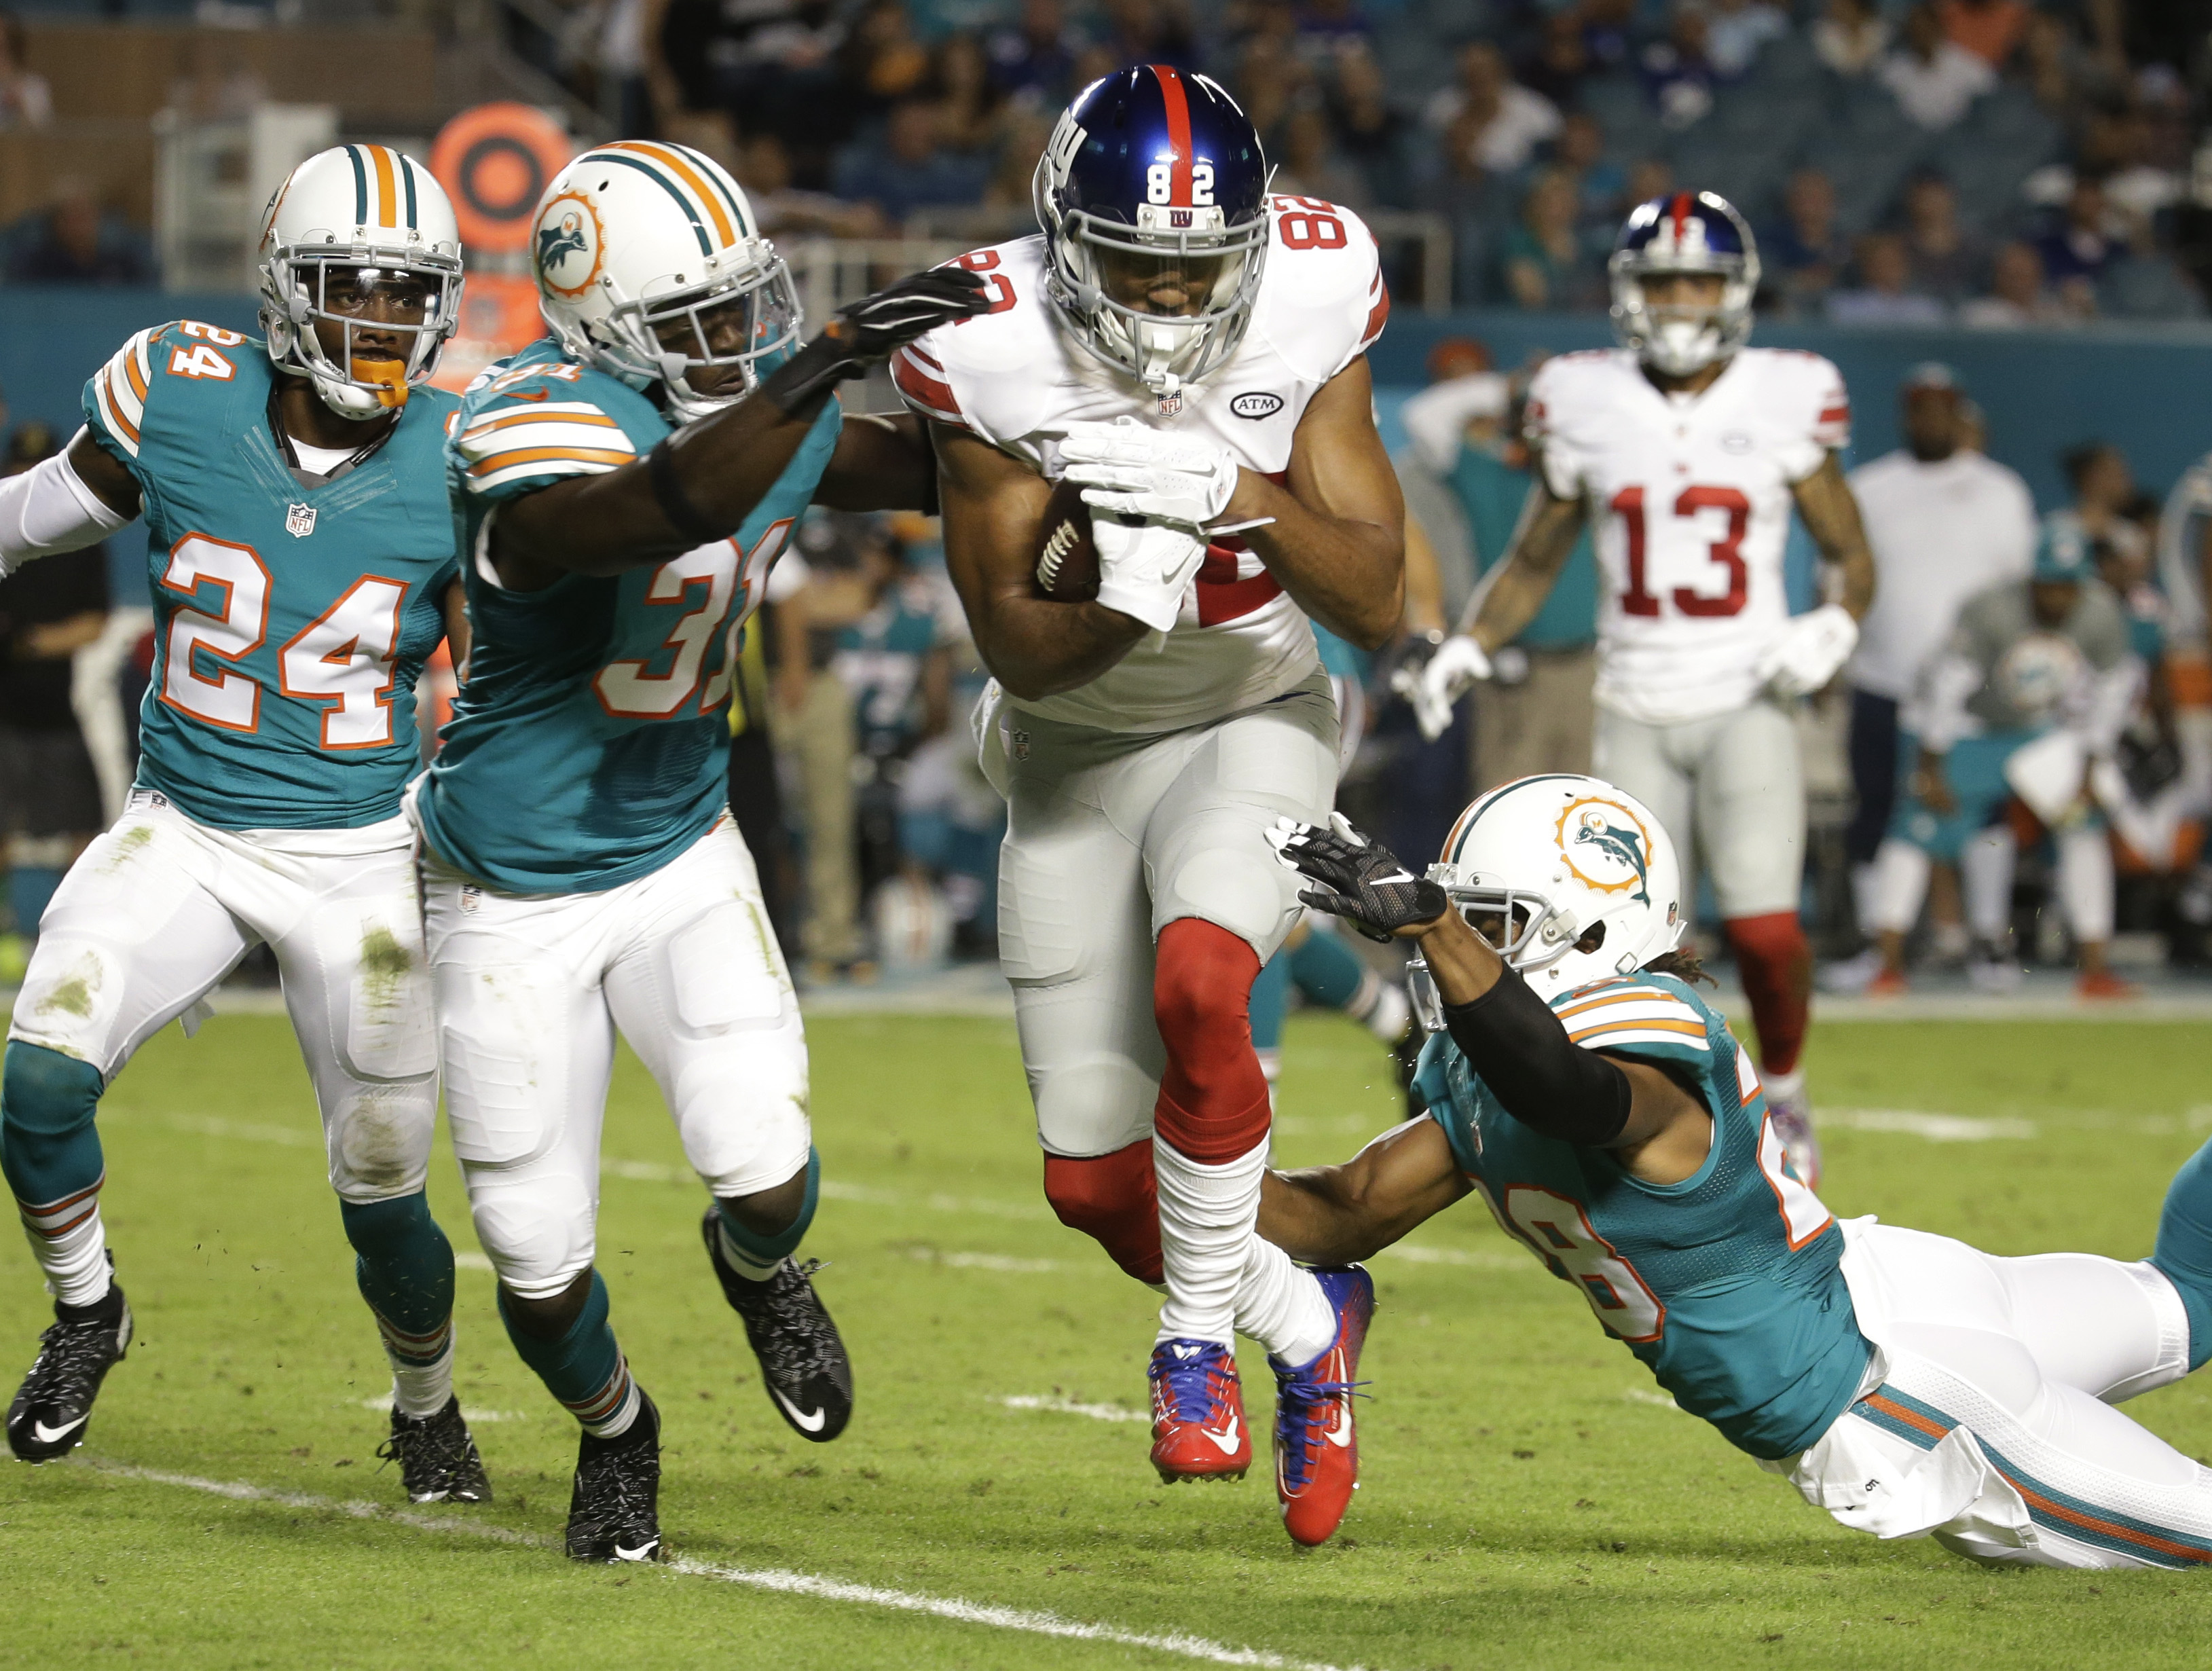 Miami Dolphins free safety Michael Thomas (31) and cornerback Bobby McCain (28) attempt to stop New York Giants wide receiver Rueben Randle (82), during the first half of an NFL football game, Monday, Dec. 14, 2015, in Miami Gardens, Fla. to the left is M